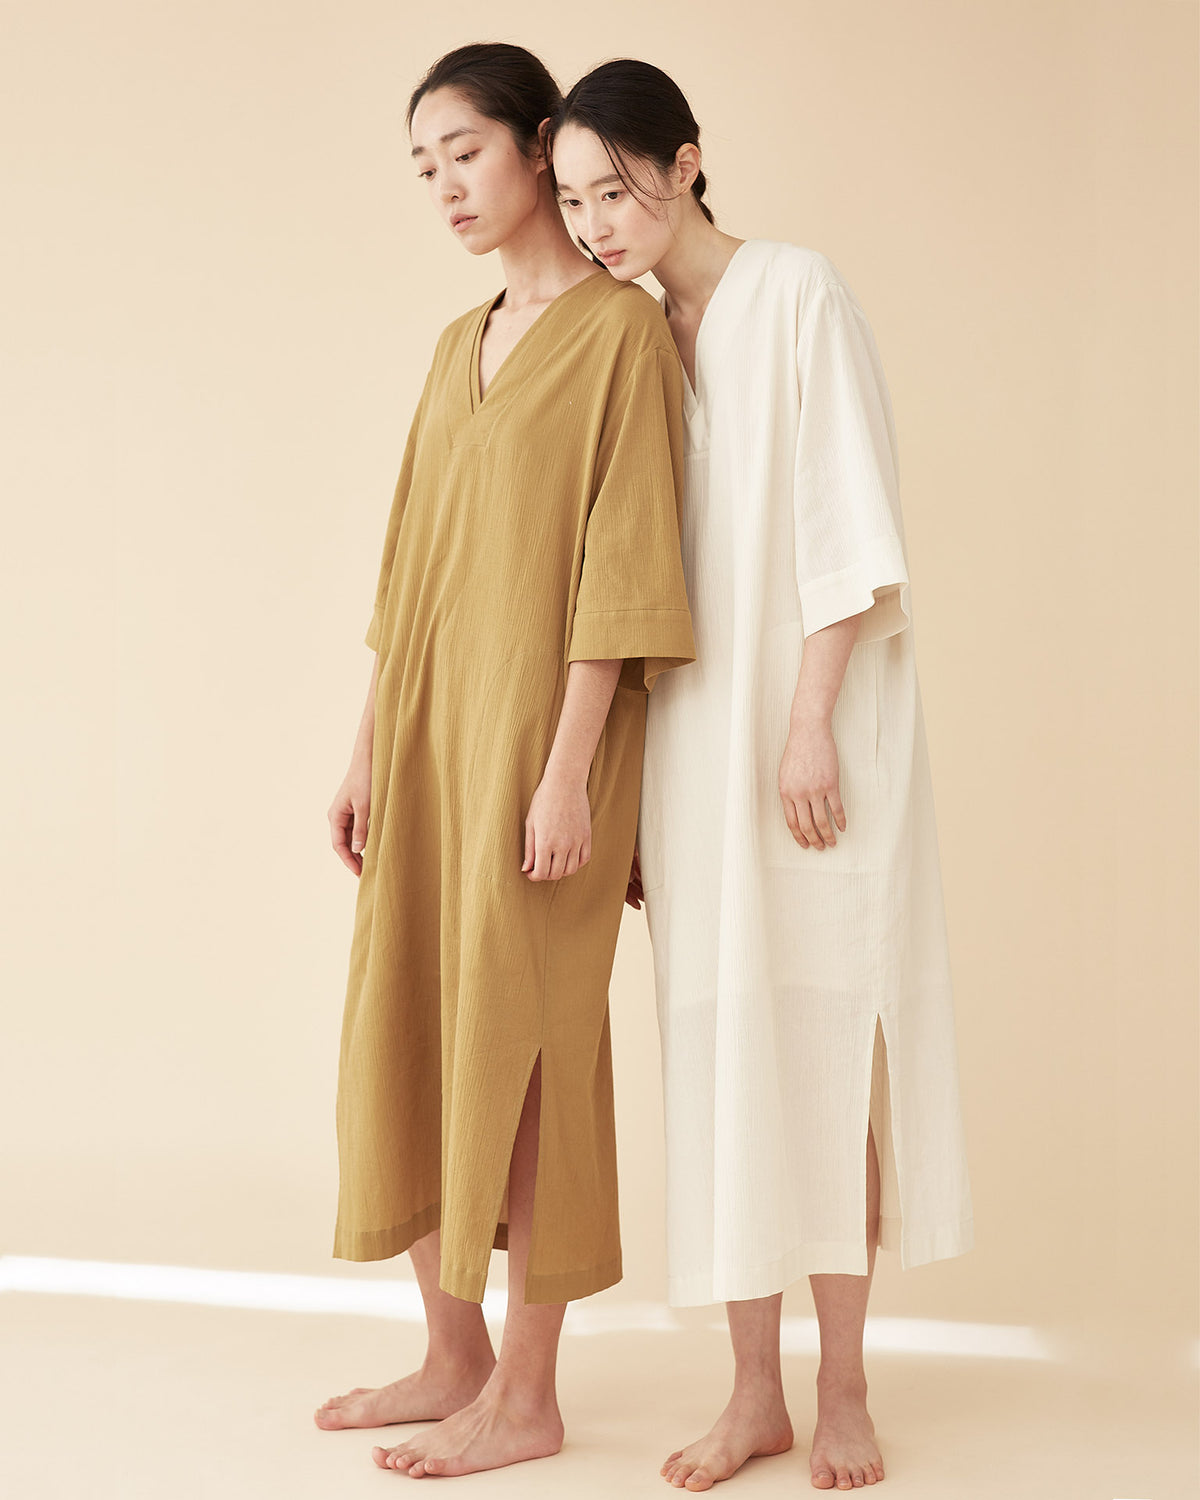 Kimono Line Sleepwear Dress / Olive Green